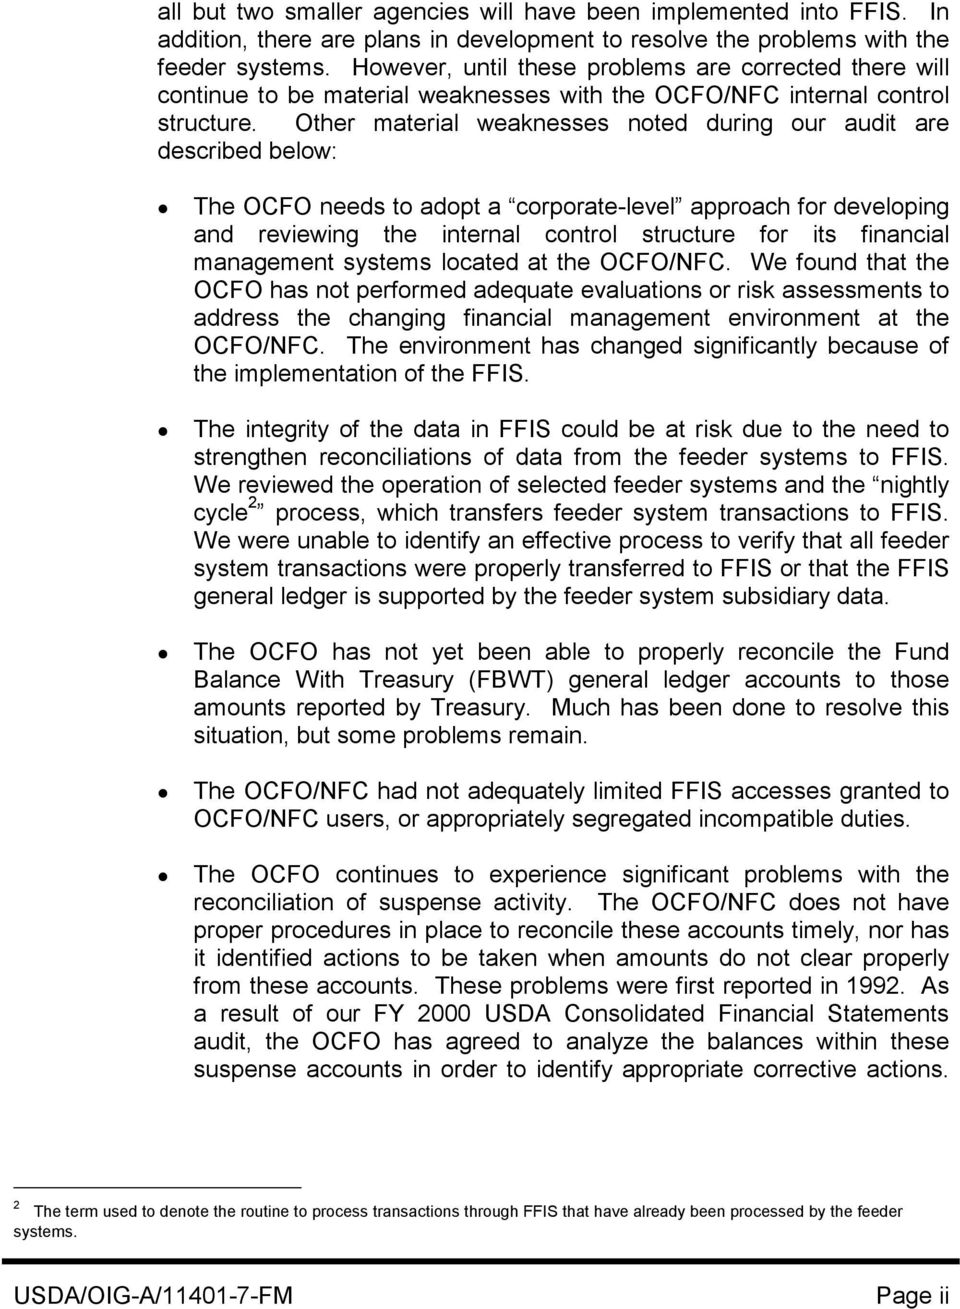 Other material weaknesses noted during our audit are described below: The OCFO needs to adopt a corporate-level approach for developing and reviewing the internal control structure for its financial